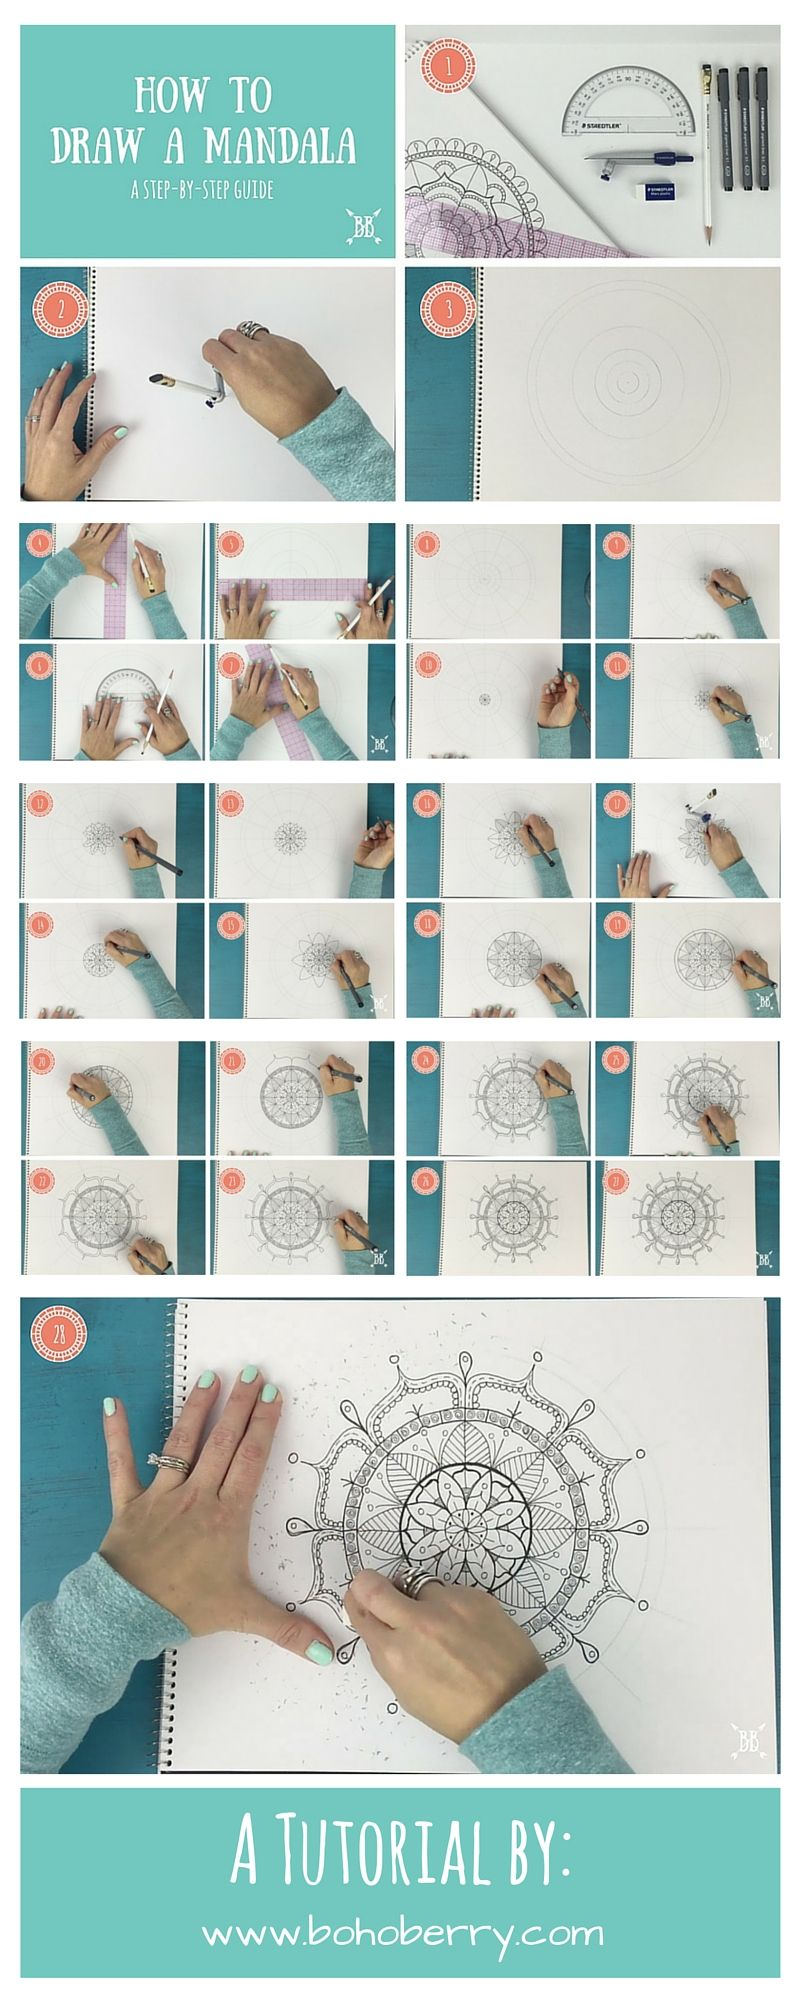 How to Draw a Mandala - A Step-by-Step Guide | How to Sheets ...